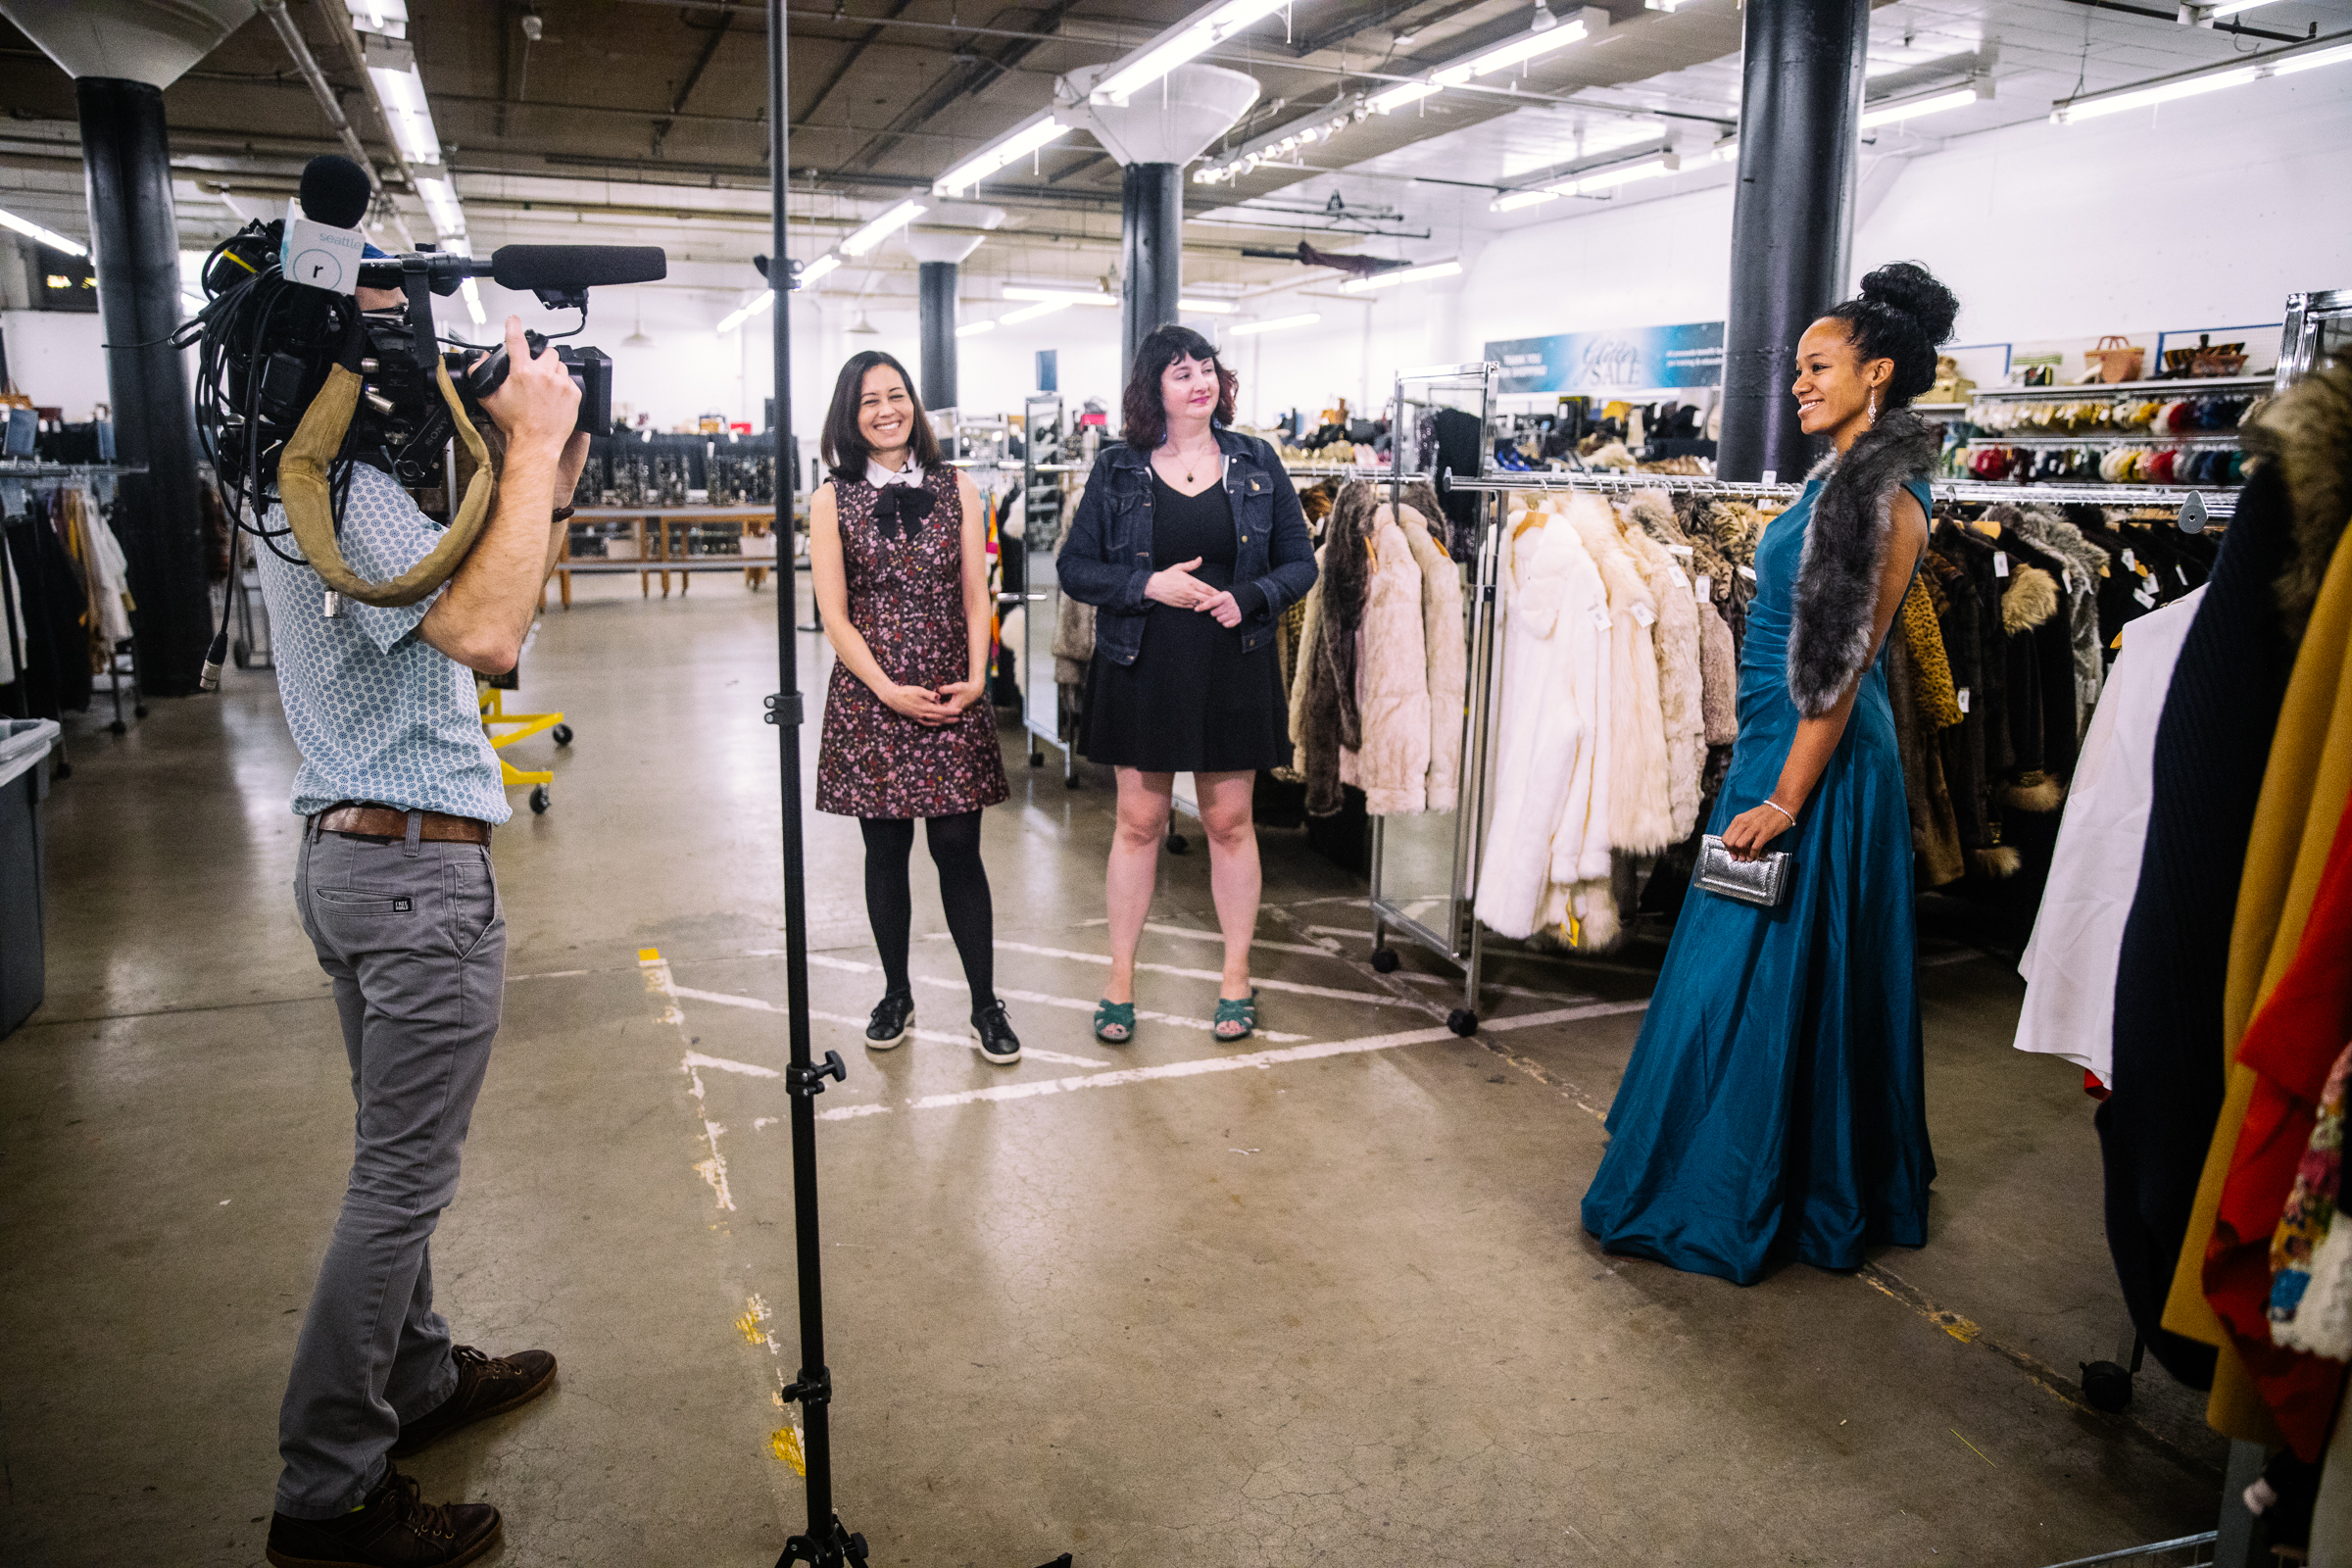 Seattle Goodwill's epic Glitter Sale (November 10th and 11th) is the event of the season for folks who love scoring fashionable finds at deep discounts. You can find amazing designer duds, vintage pieces, coats, shoes, jewelry and much more.{ } (Photo Courtesy Seattle Goodwill)